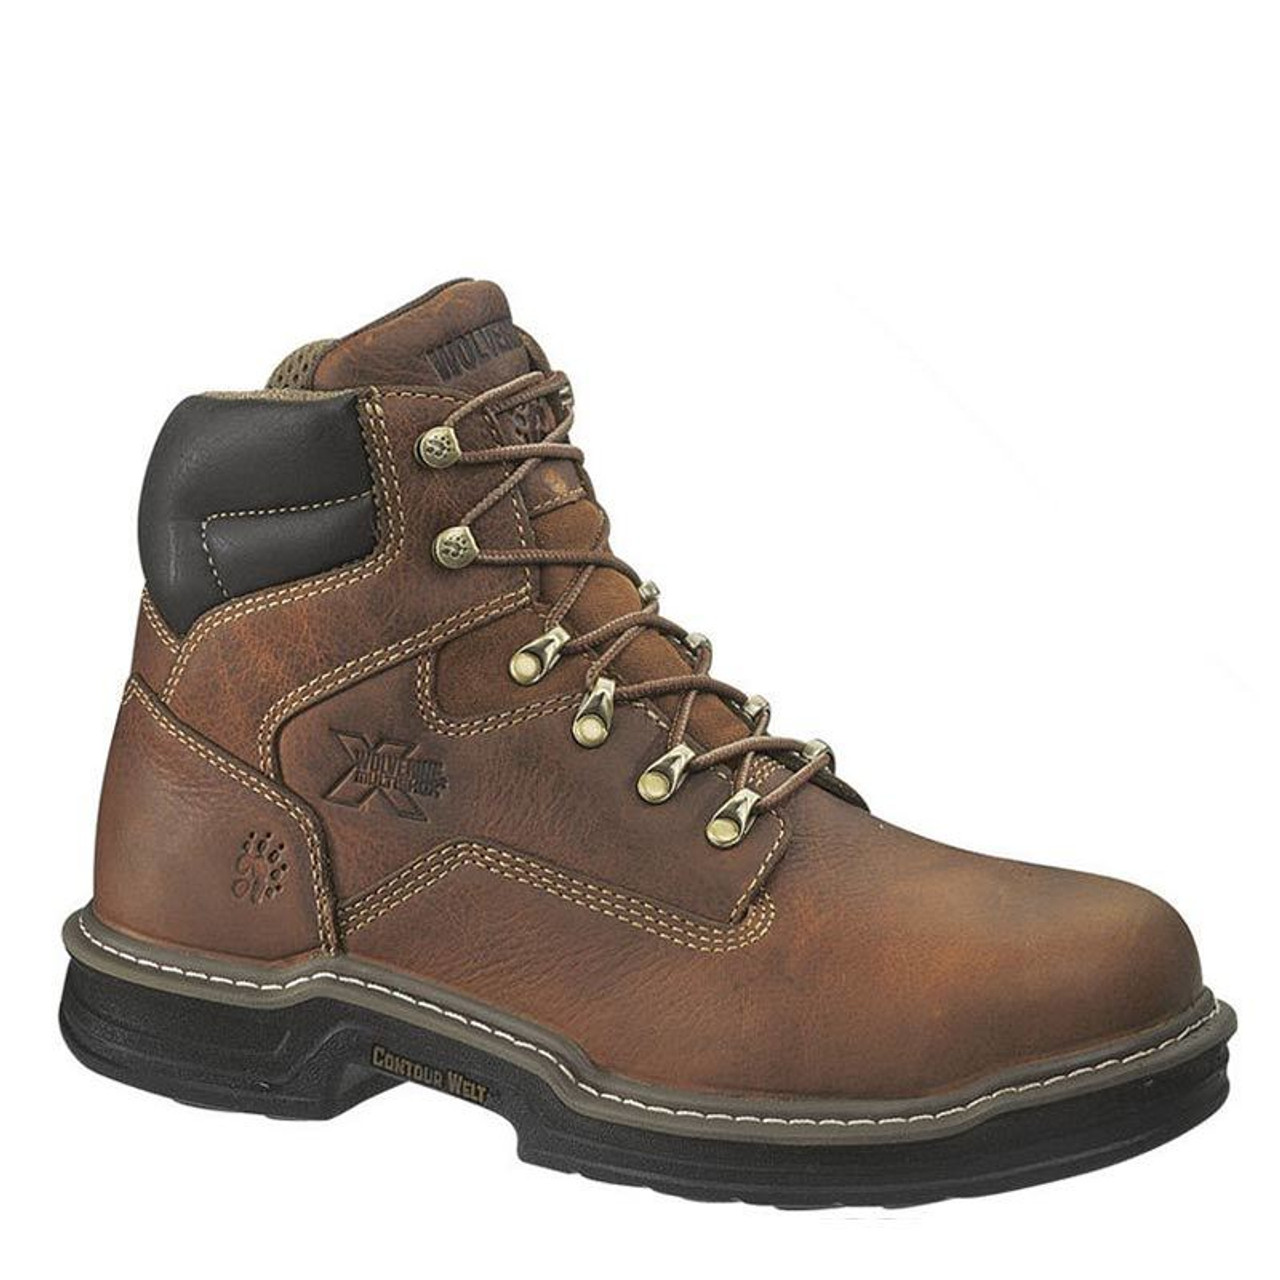 8e0d138b372 Wolverine W02419 RAIDER Steel Toe Non-Insulated Multishox Work Boots